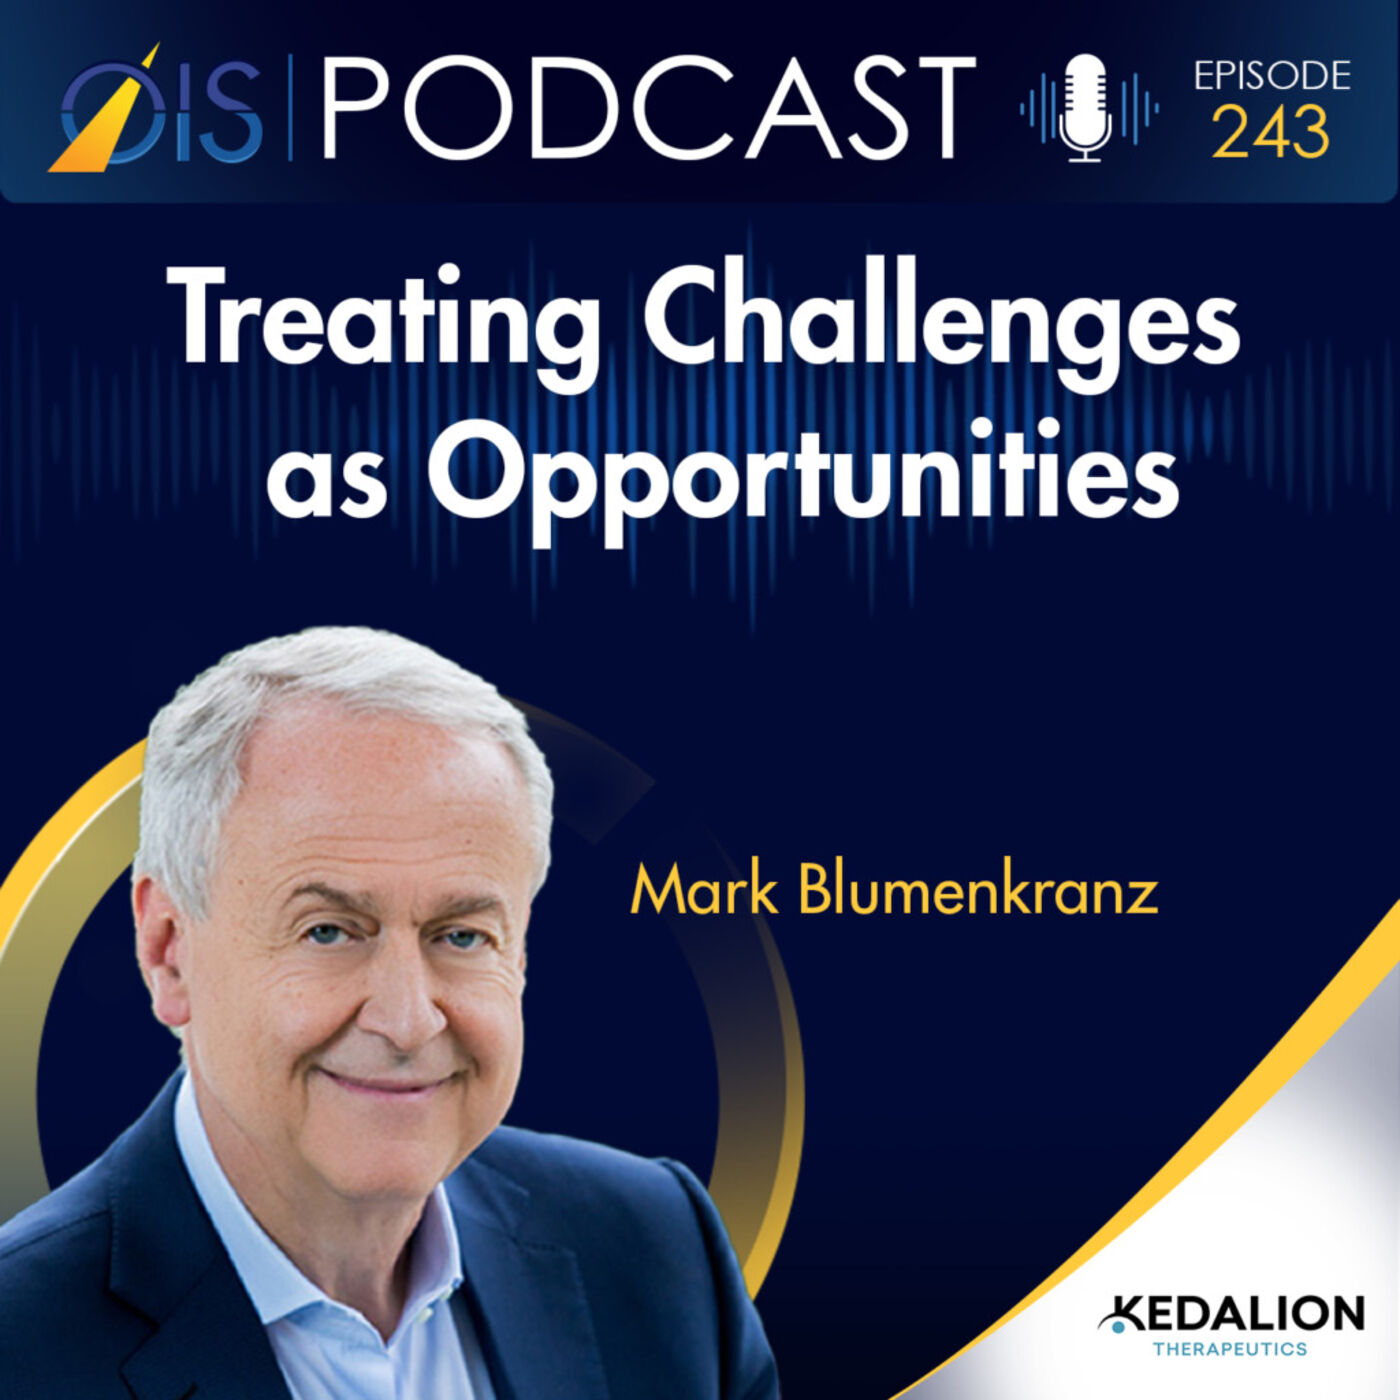 Treating Challenges as Opportunities